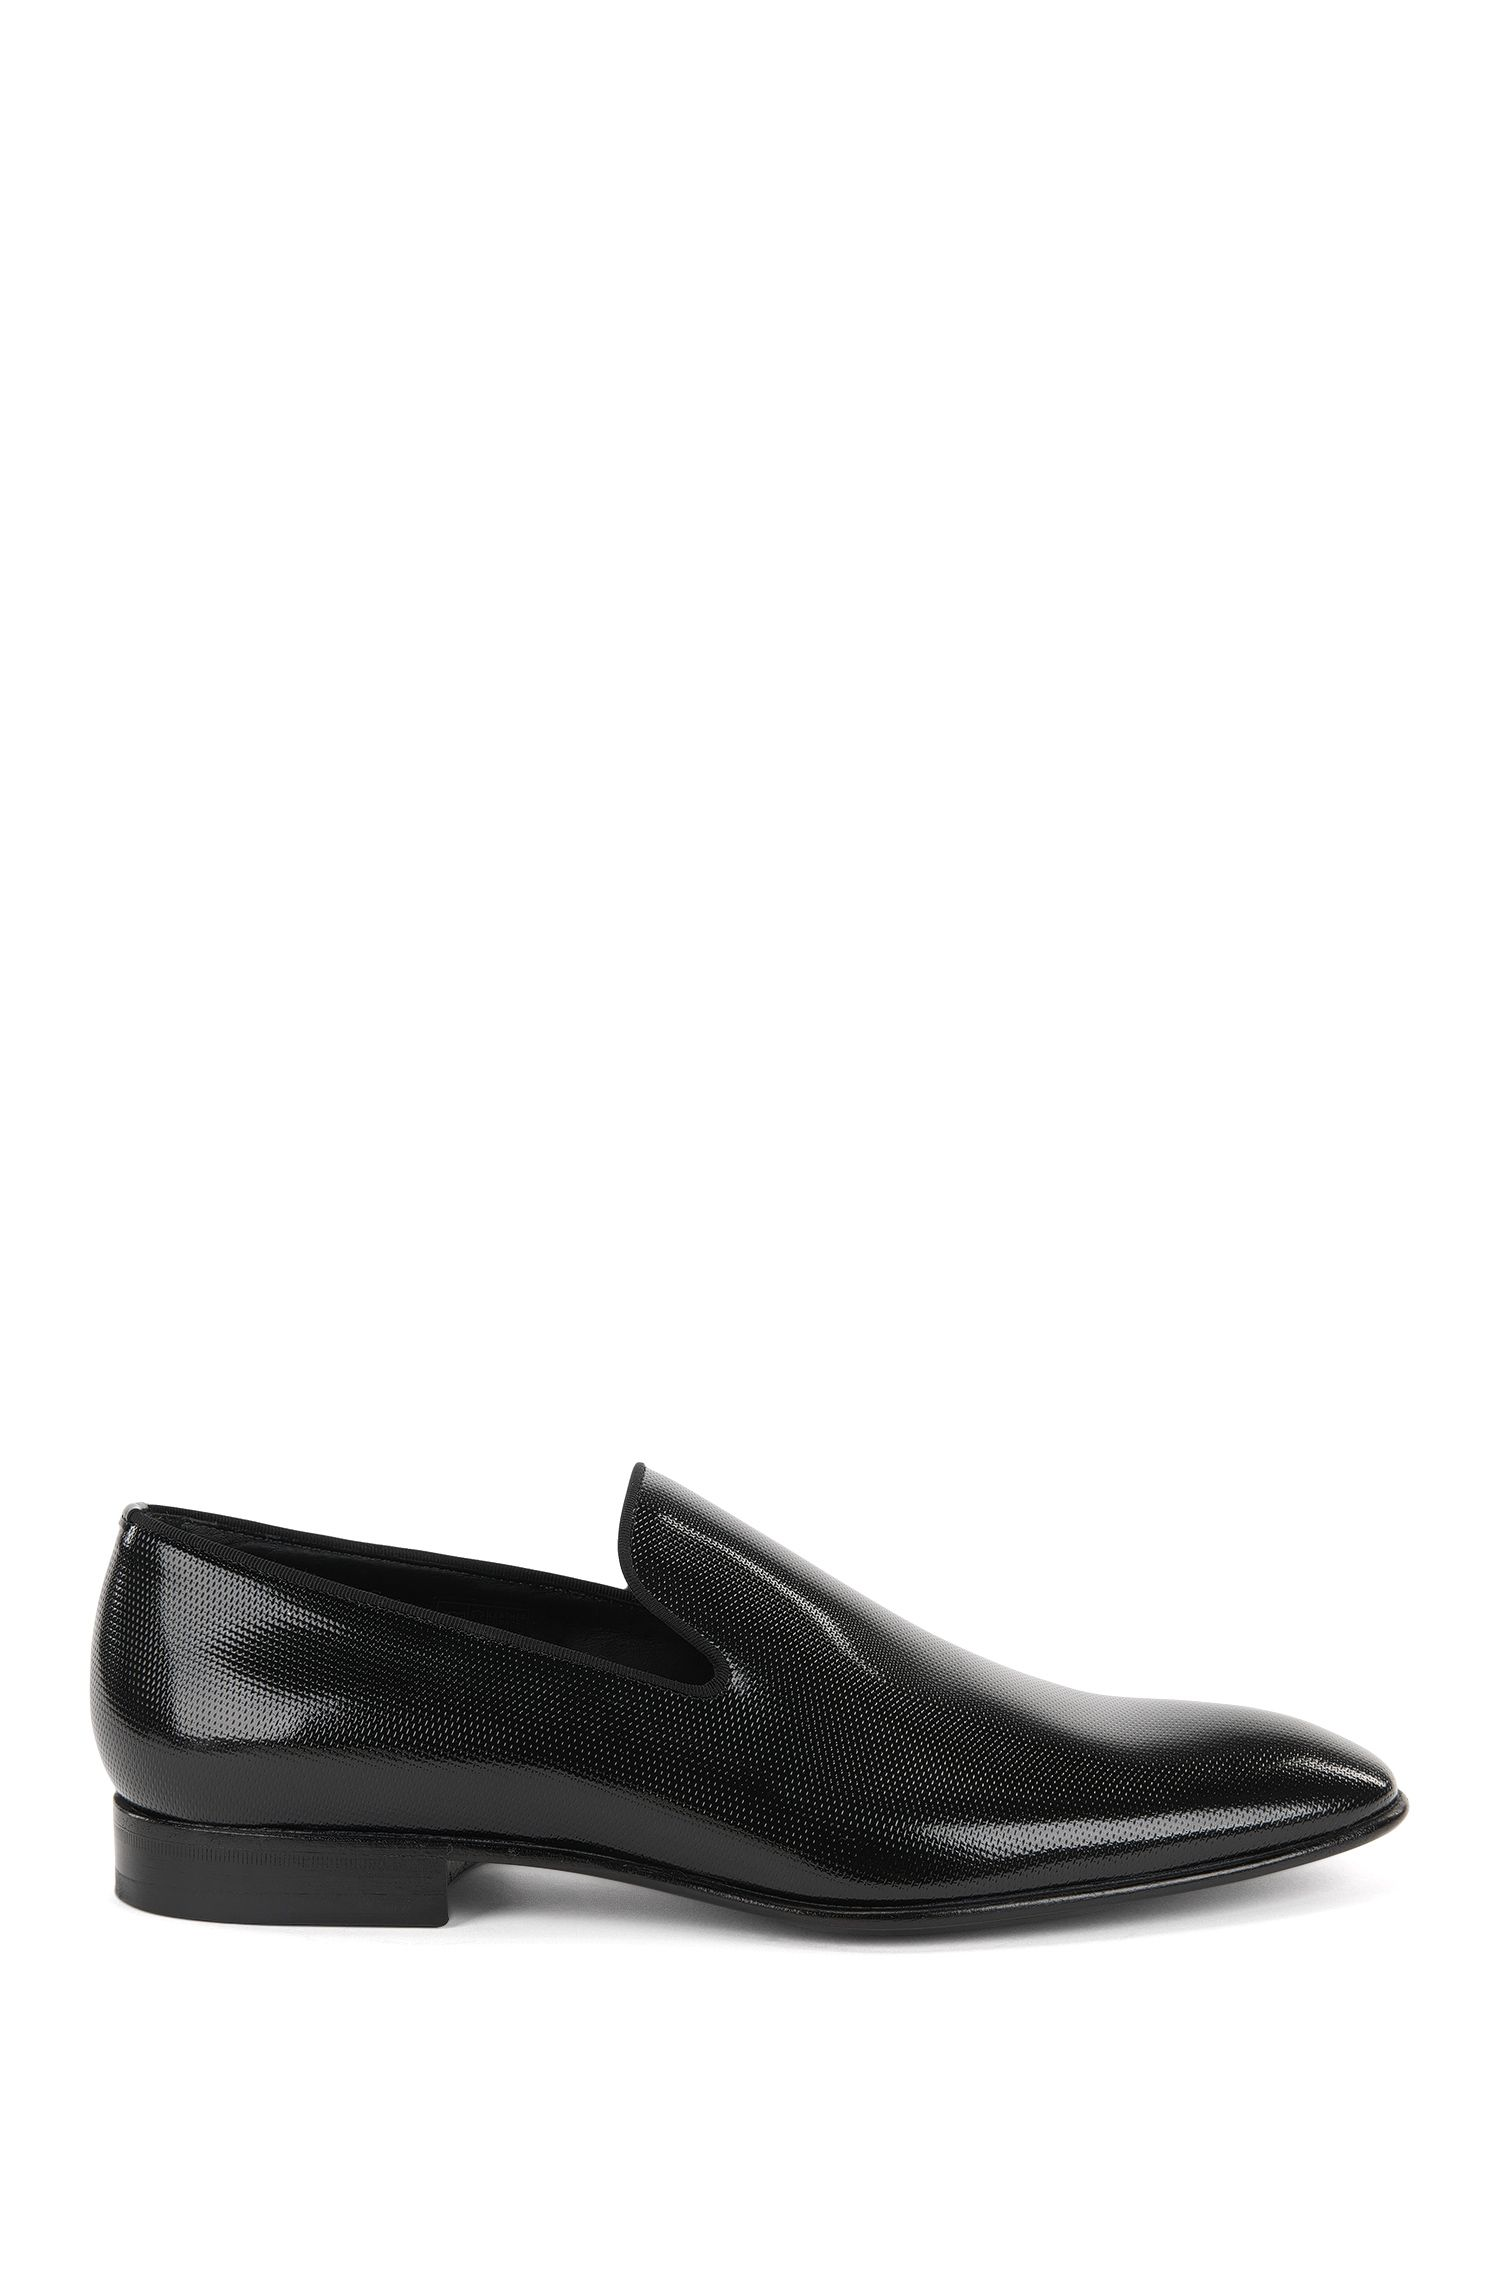 Printed Patent Leather Slip-On Loafers | Evening Slon Papr